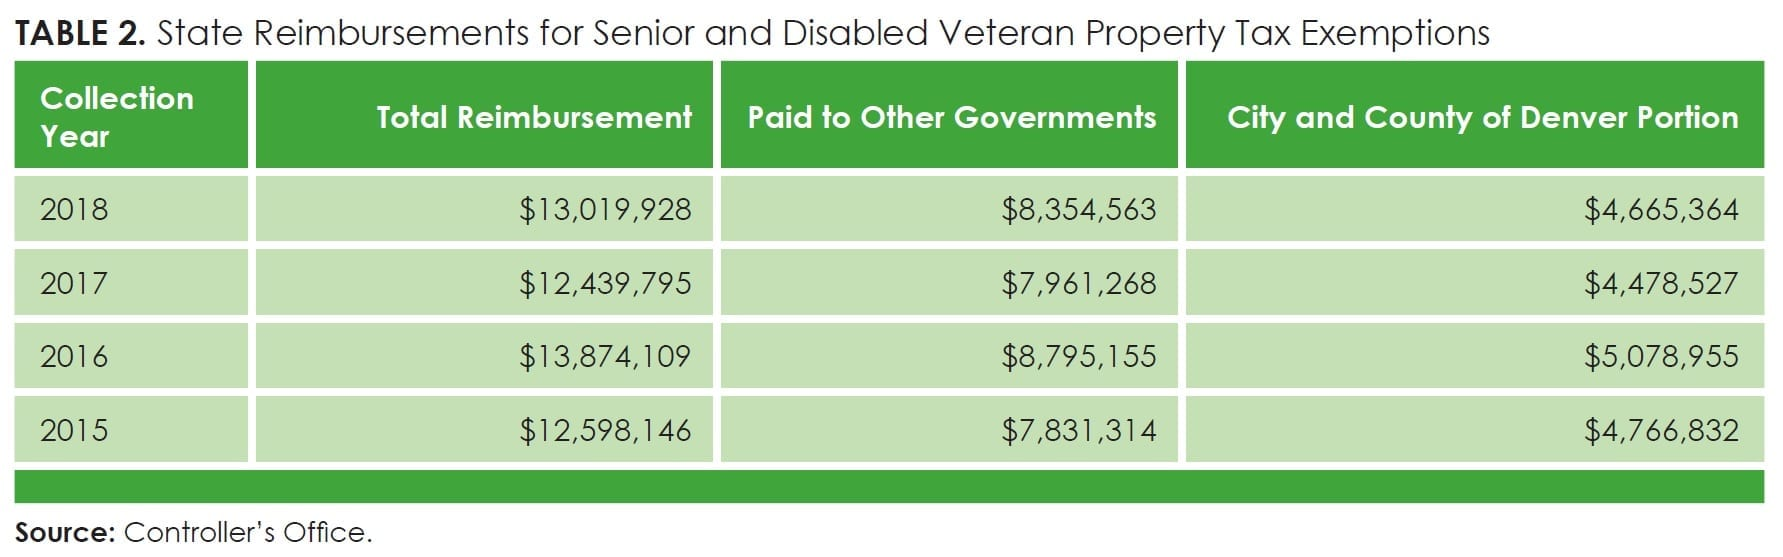 Table2_State Reimbursements for Senior and Disabled Veteran Property Tax Exemptions